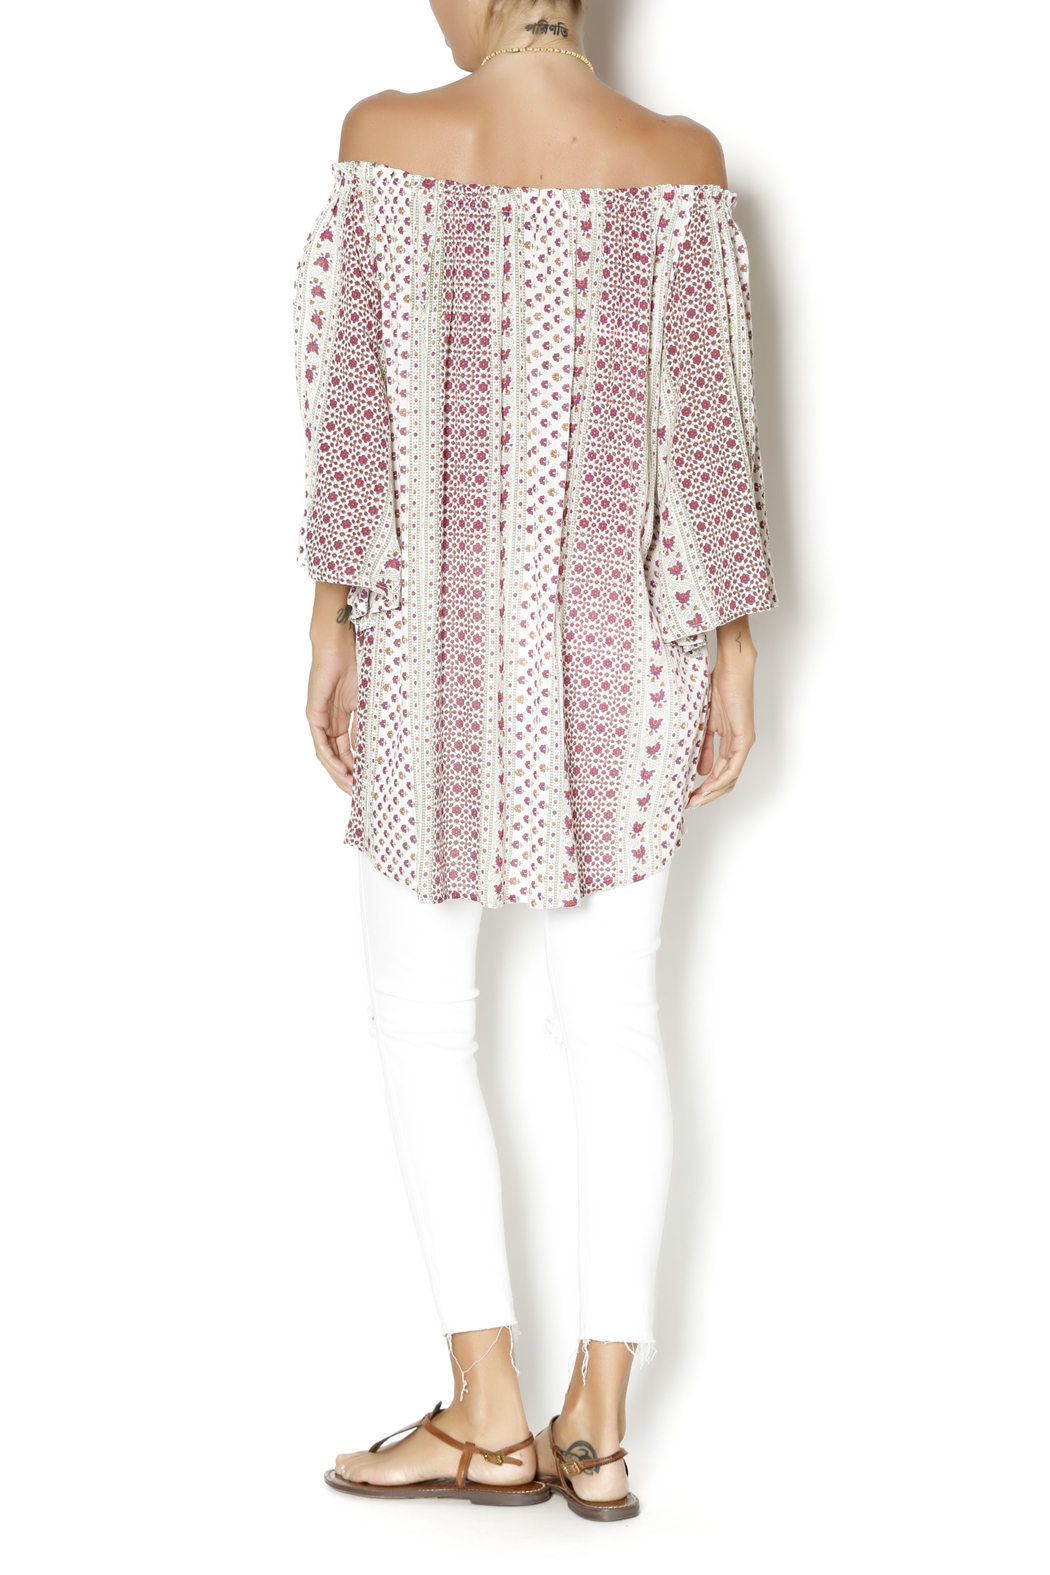 Fashion Fuse Floral Tunic From Connecticut By CHAOS